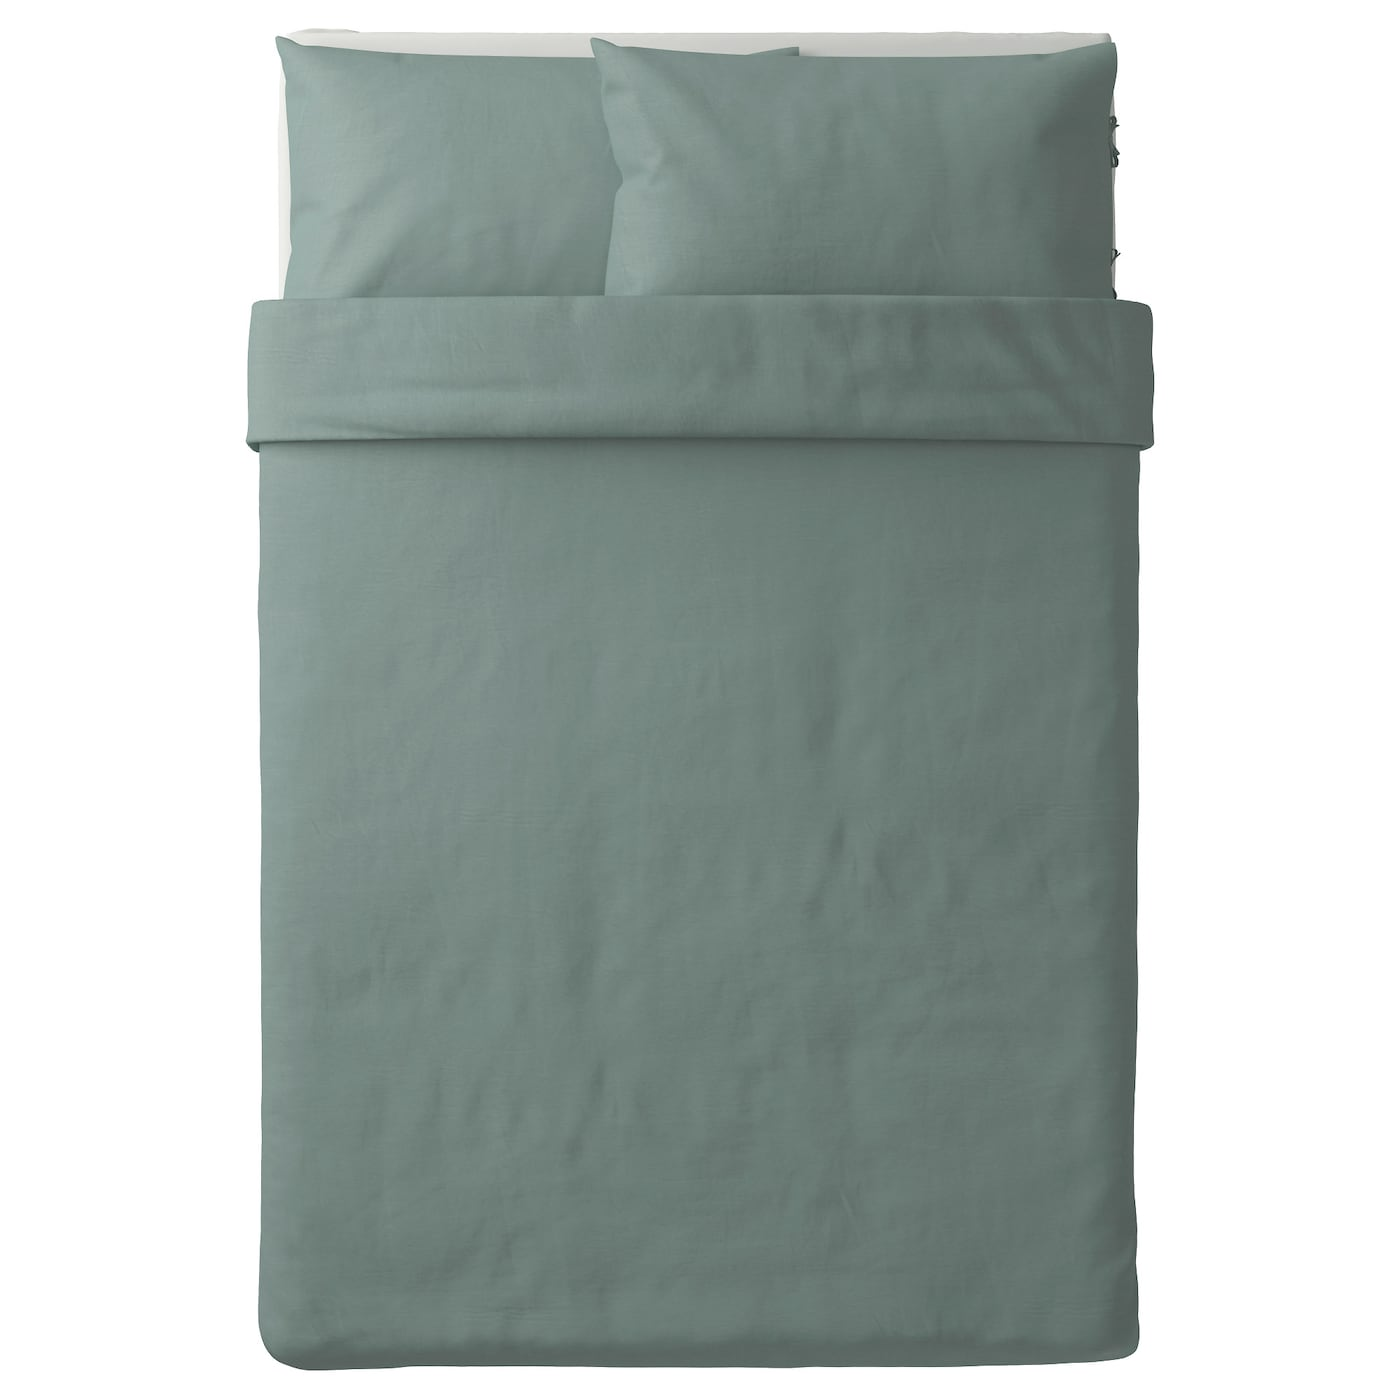 puderviva quilt cover and 2 pillowcases green 200x200 50x80 cm ikea. Black Bedroom Furniture Sets. Home Design Ideas